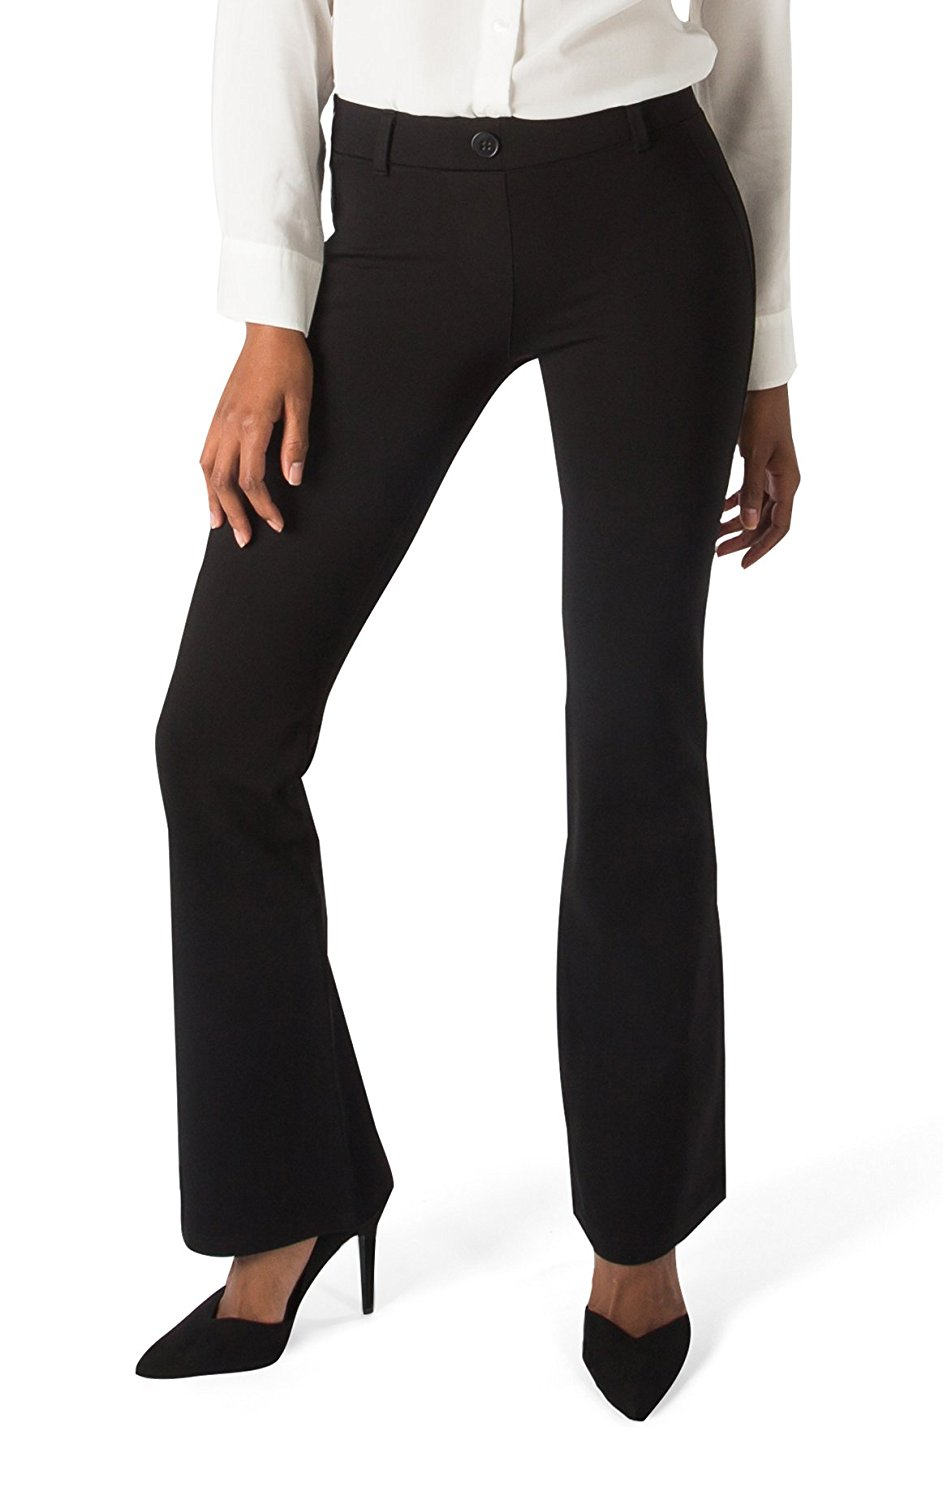 Beta Brands Limited | Betabrand Yoga Dress Pants | Yoga Pants Petite Sizes